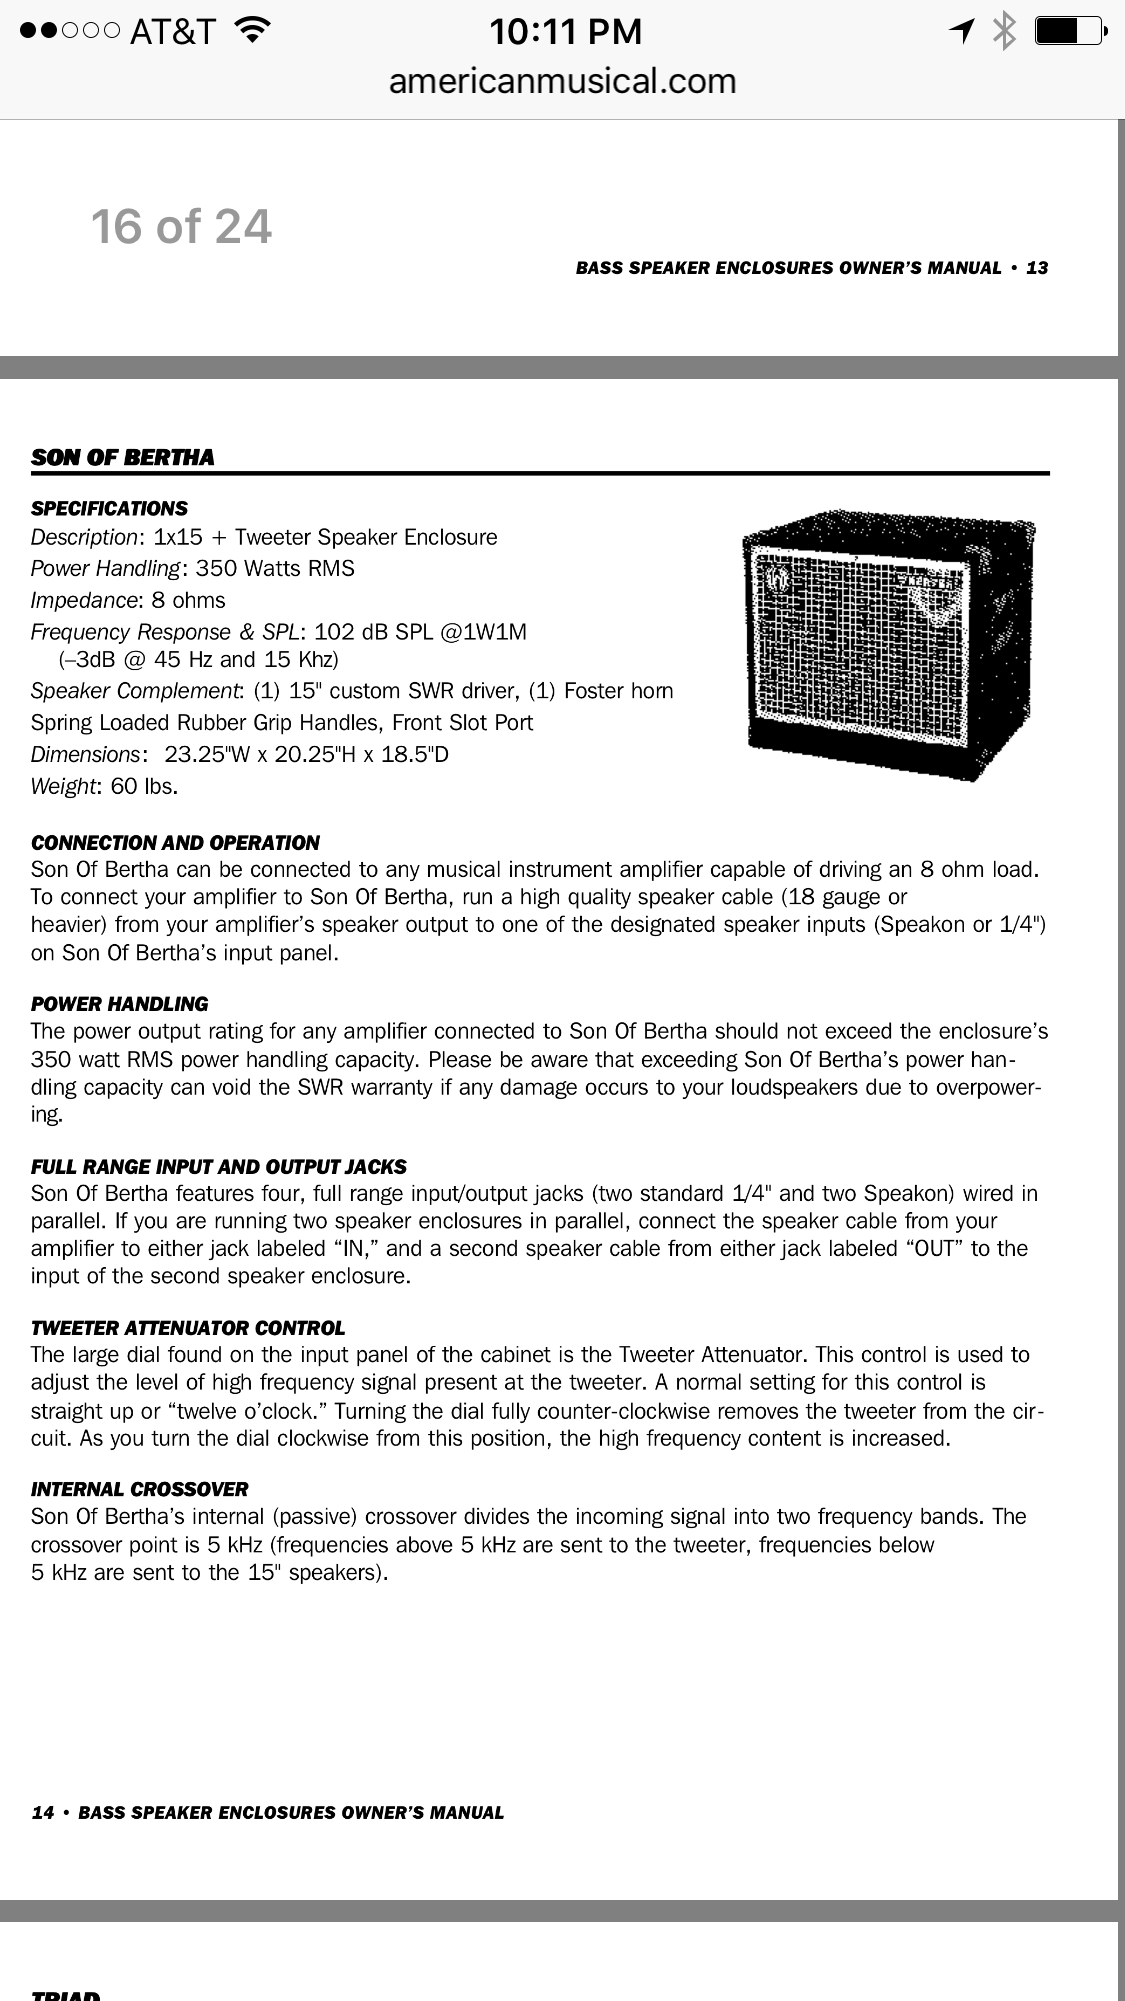 Fine 14 Gauge Amp Rating Gallery - Electrical and Wiring Diagram ...